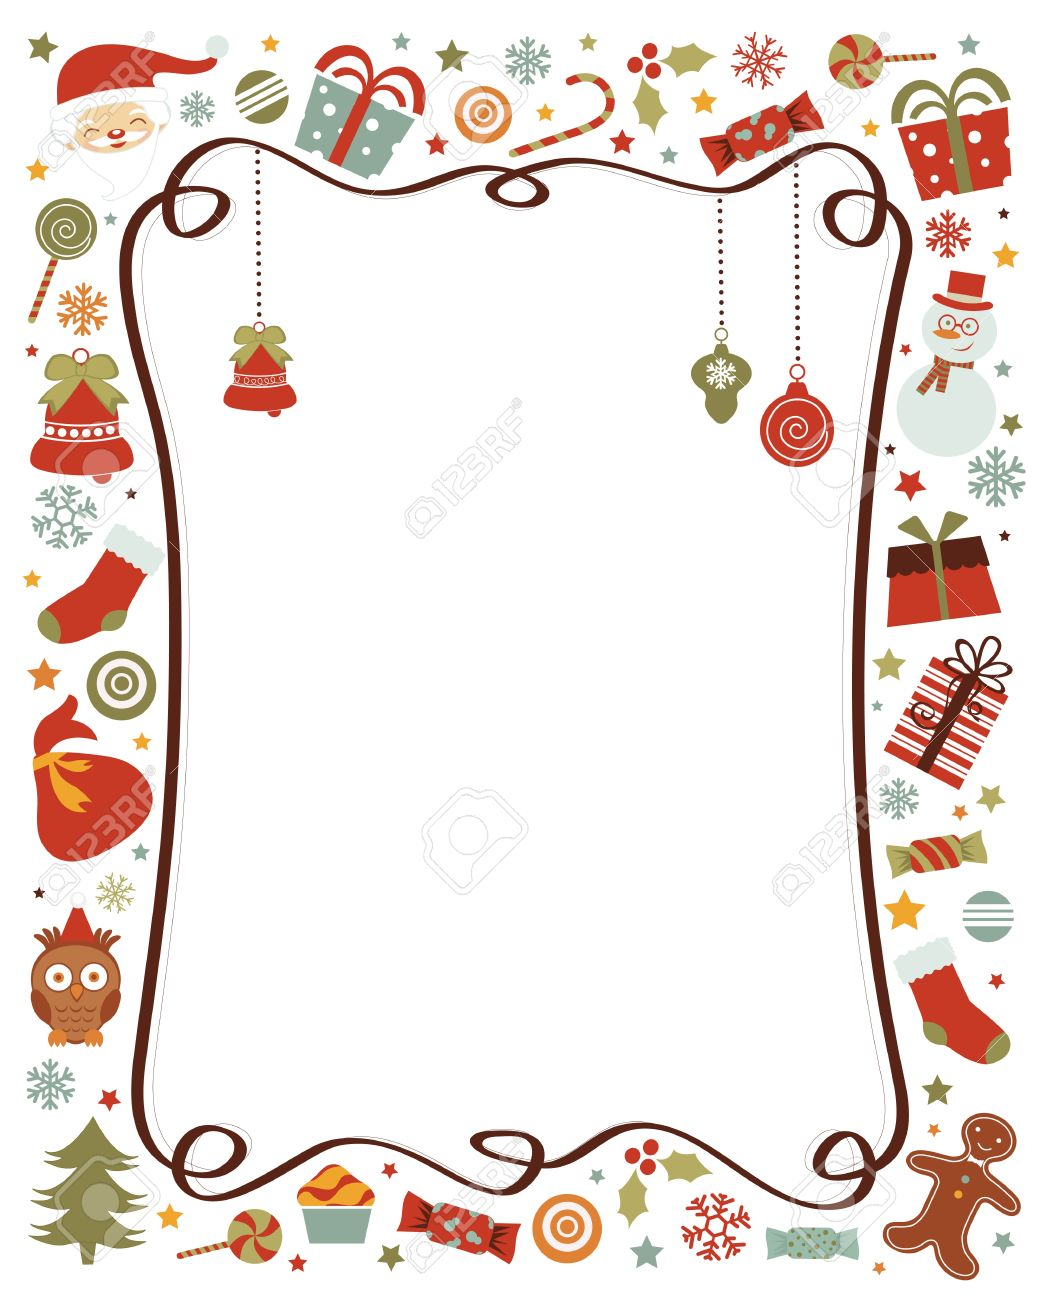 Une Bordure Coloree Avec Des Elements De Noel Divers Lies Clip Art Libres De Droits Vecteurs Et Illustration Image 16947824